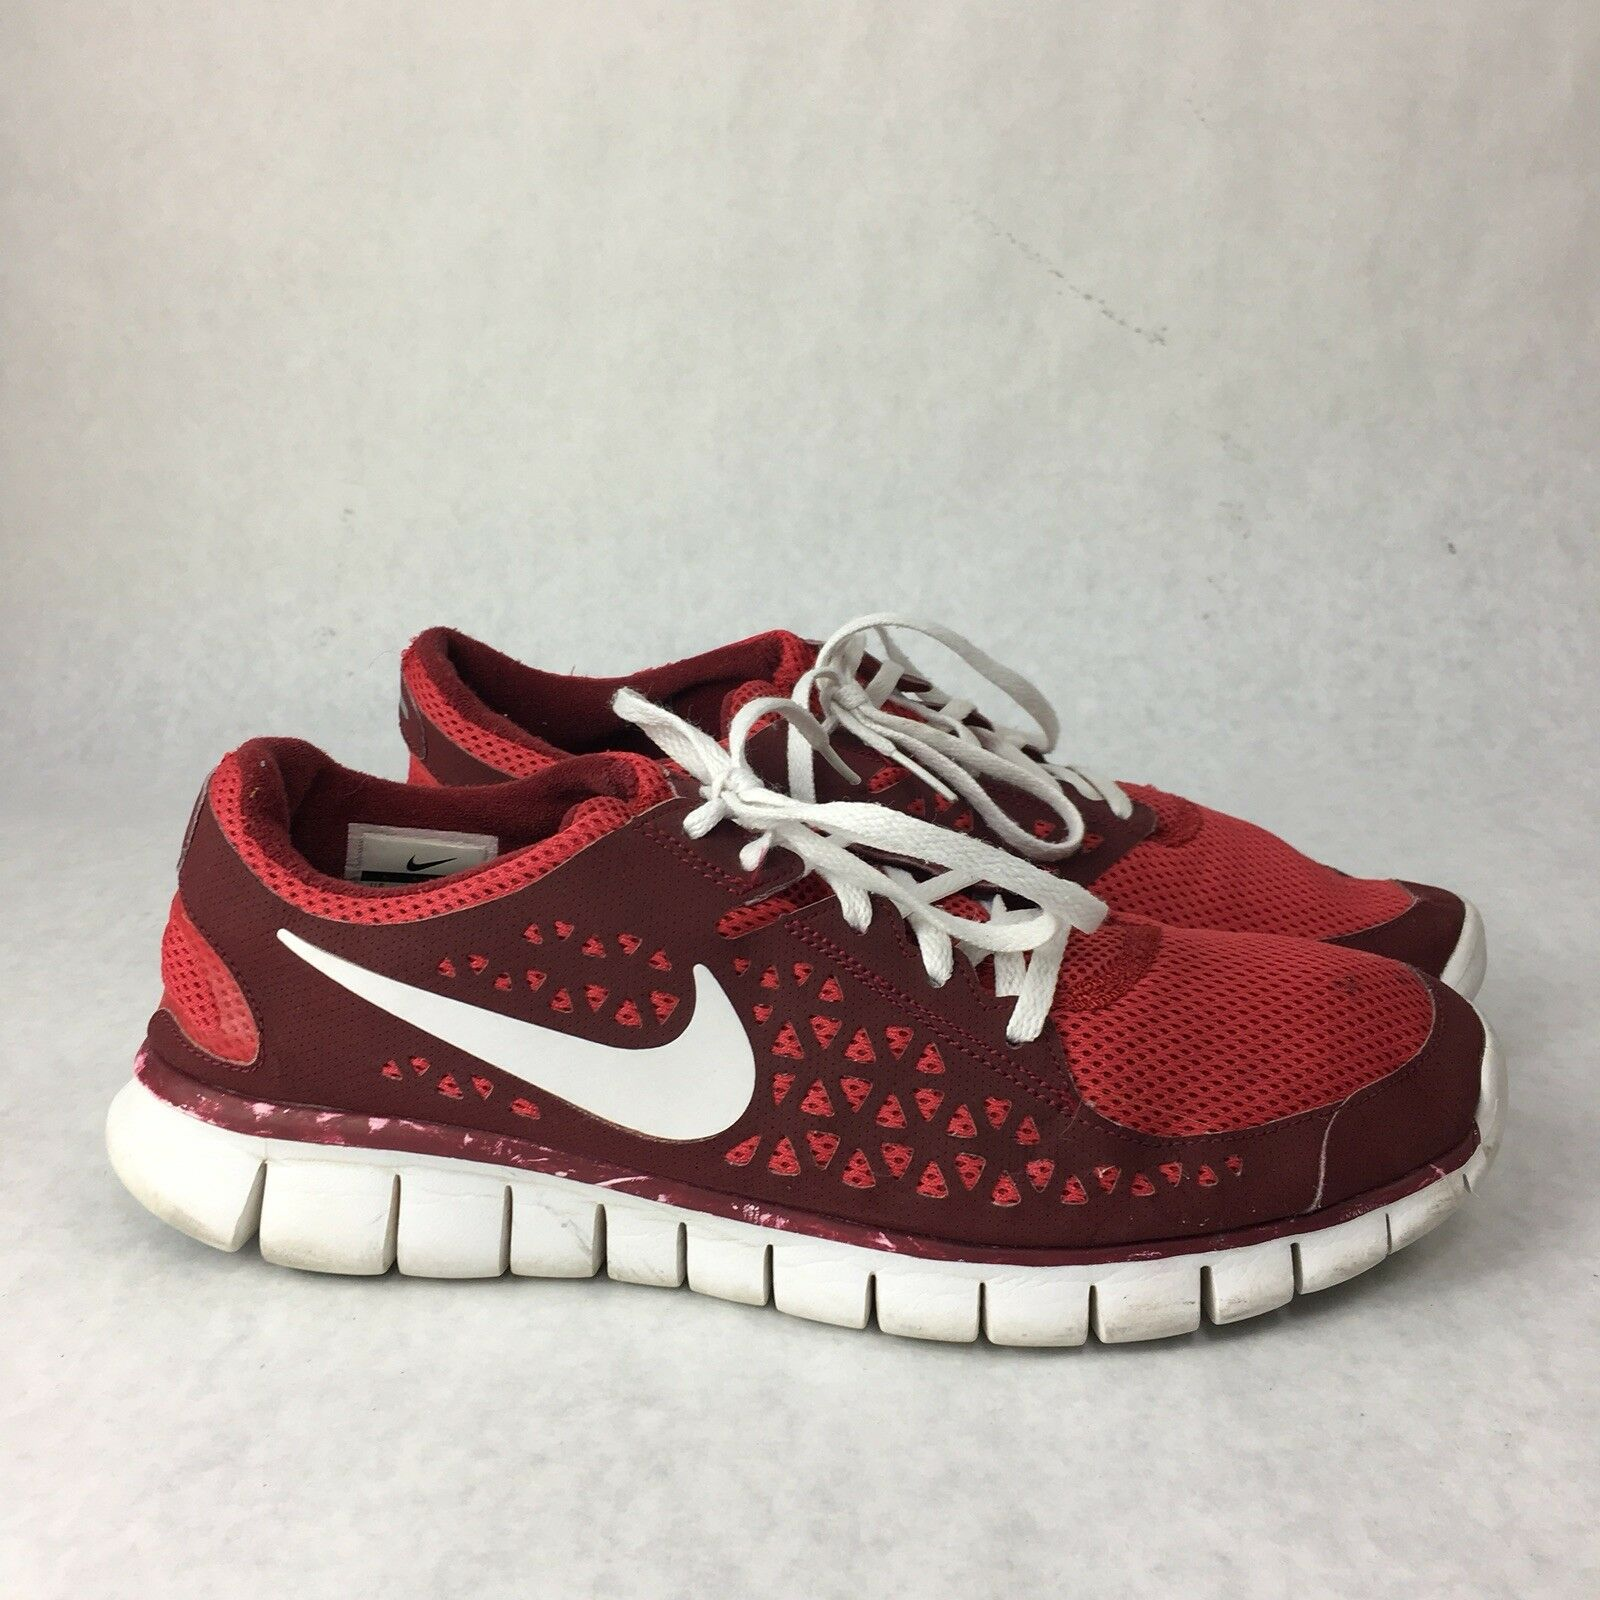 Extremely rare NIKE FREE RUN+ 395912-600 size 11.5 RUNNING SHOES